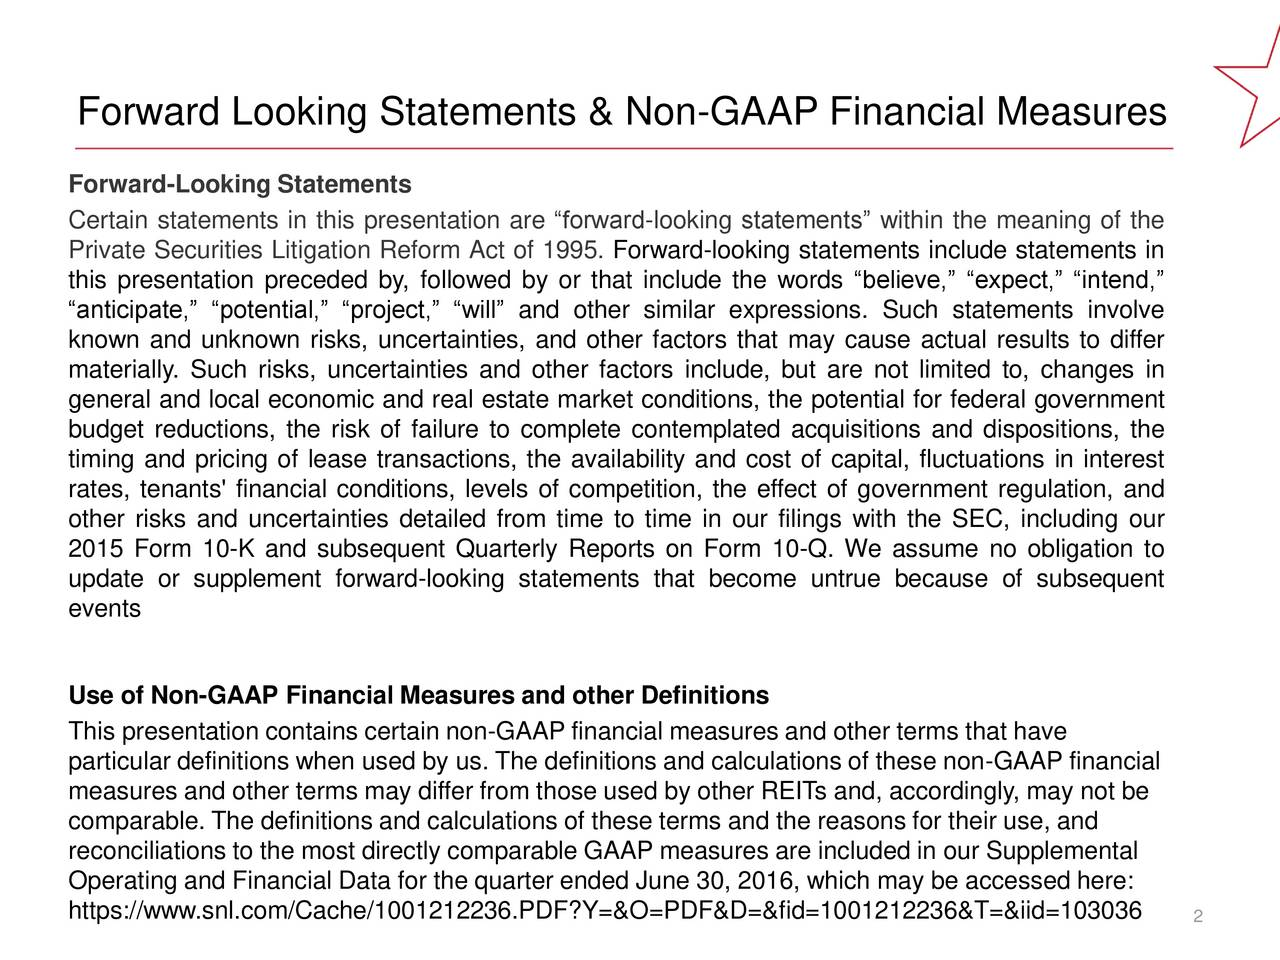 Forward Looking Statements & Non-GAAP Financial Measures 0, 0, 0 Forward-Looking Statements Certain statements in this presentation are forward-looking statements within the meaning of the Private Securities Litigation Reform Act of 1995. Forward-looking statements include statements in 190, 30, 45 this presentation preceded by, followed by or that include the words believe, expect, intend, anticipate, potential, project, will and other similar expressions. Such statements involve known and unknown risks, uncertainties, and other factors that may cause actual results to differ 99, 100, 102 materially. Such risks, uncertainties and other factors include, but are not limited to, changes in general and local economic and real estate market conditions, the potential for federal government budget reductions, the risk of failure to complete contemplated acquisitions and dispositions, the ACCENT timing and pricing of lease transactions, the availability and cost of capital, fluctuations in interest COLORS rates, tenants' financial conditions, levels of competition, the effect of government regulation, and other risks and uncertainties detailed from time to time in our filings with the SEC, including our 2015 Form 10-K and subsequent Quarterly Reports on Form 10-Q. We assume no obligation to update or supplement forward-looking statements that become untrue because of subsequent 114, 7, 17 events Use of Non-GAAP Financial Measures and other Definitions 232, 203, 31 This presentation contains certain non-GAAP financial measures and other terms that have particular definitions when used by us. The definitions and calculations of these non-GAAP financial measures and other terms may differ from those used by other REITs and, accordingly, may not be 13, 80, 114 comparable. The definitions and calculations of these terms and the reasons for their use, and reconciliations to the most directly comparable GAAP measures are included in our Supplemental Operating and Financial Data for the quarter ended June 30, 2016, which may be accessed here: https://www.snl.com/Cache/1001212236.PDF?Y=&O=PDF&D=&fid=1001212236&T=&iid=103036 9, 107, 178